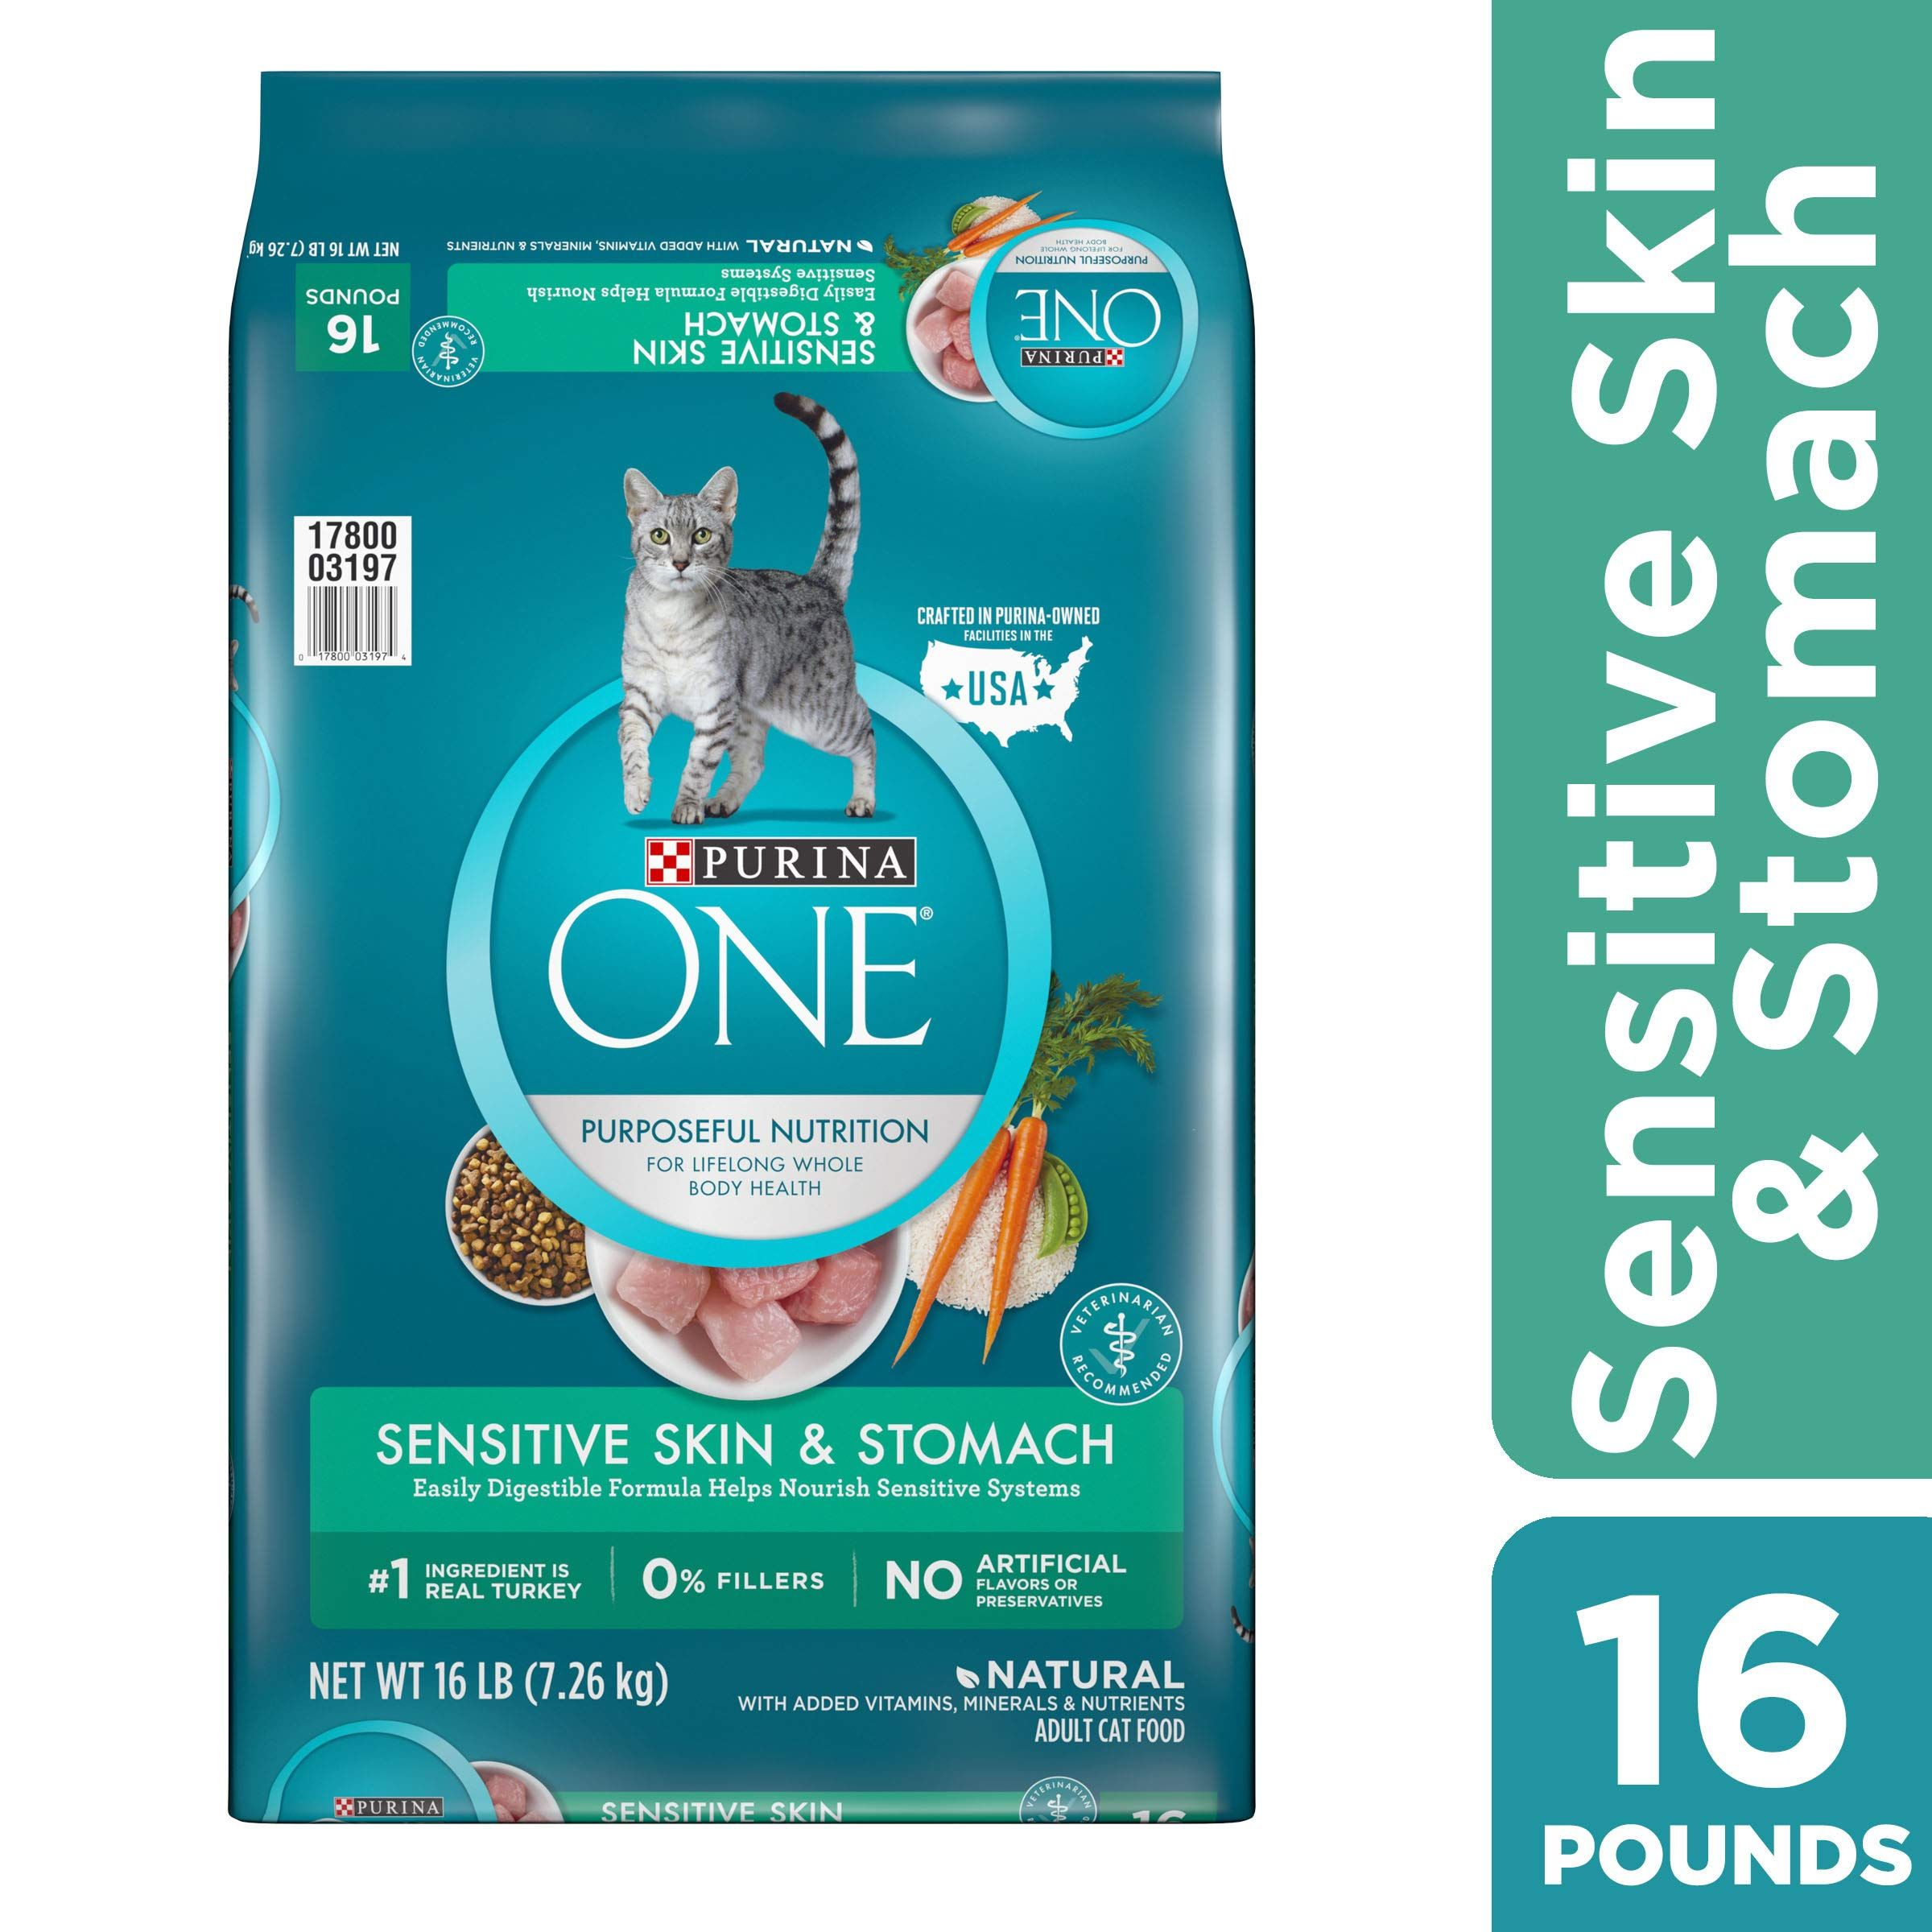 Emotional Support Cats In 2020 Dry Cat Food Sensitive Stomach Cat Food